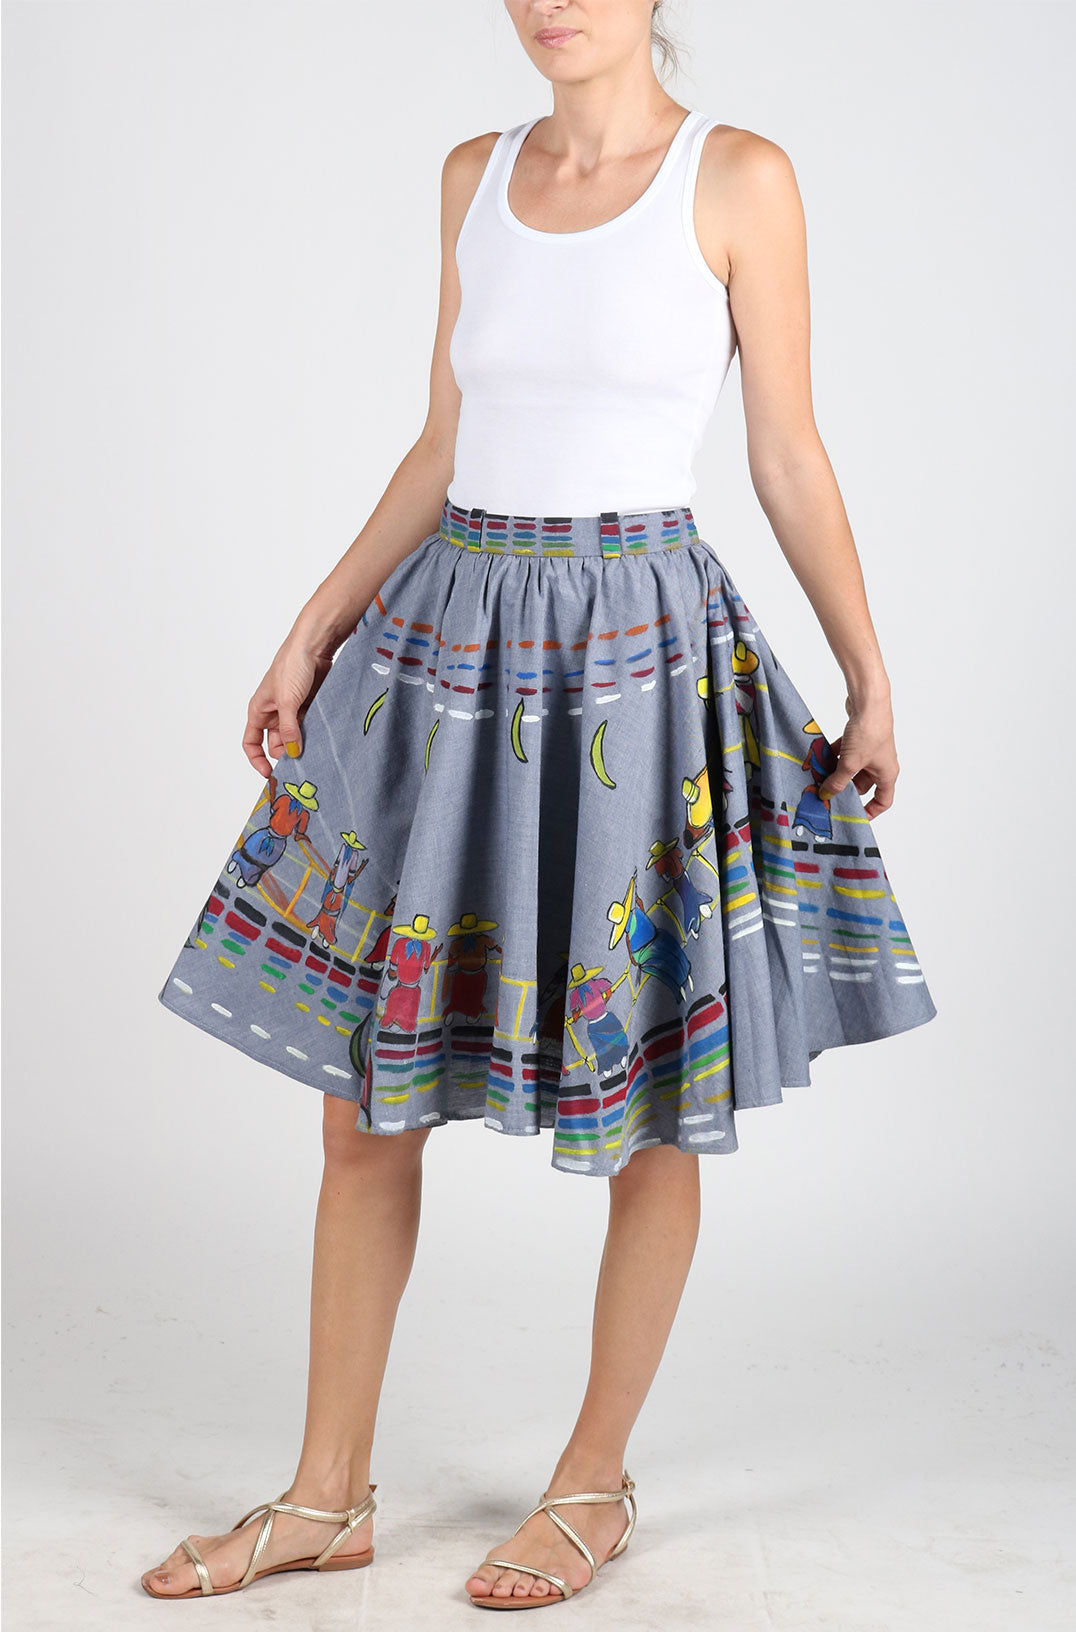 Fanm Mon Hand Painted Linen Denim Blue Color Ethnic Afro Caribbean Summer Skirts HPSS176